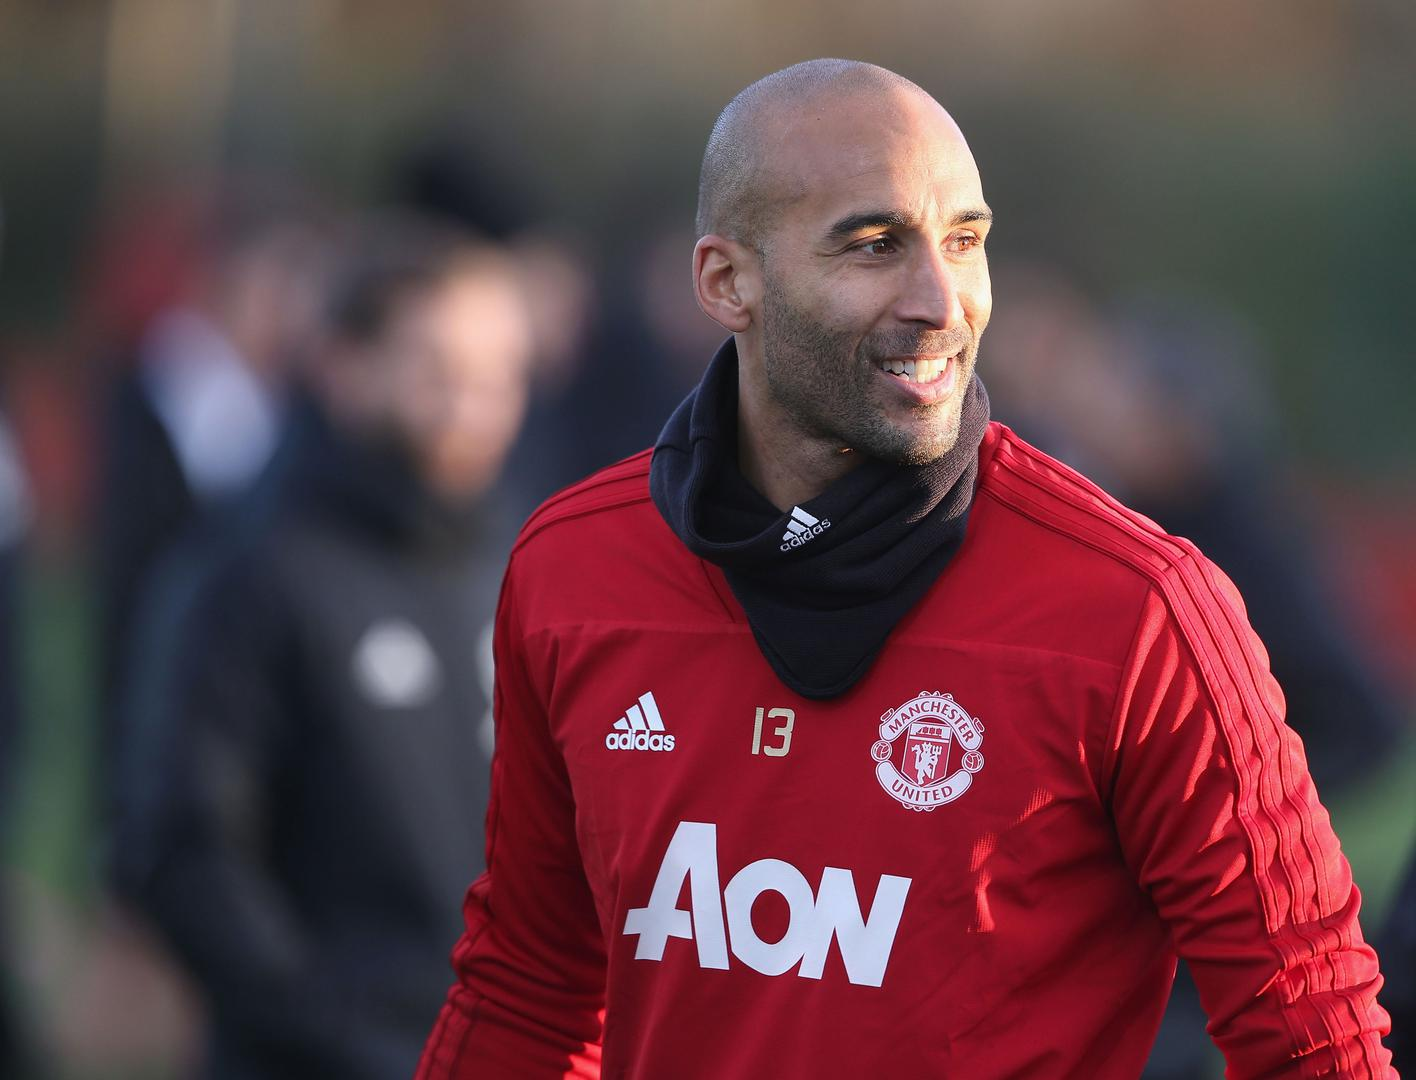 Lee Grant during Manchester United training.